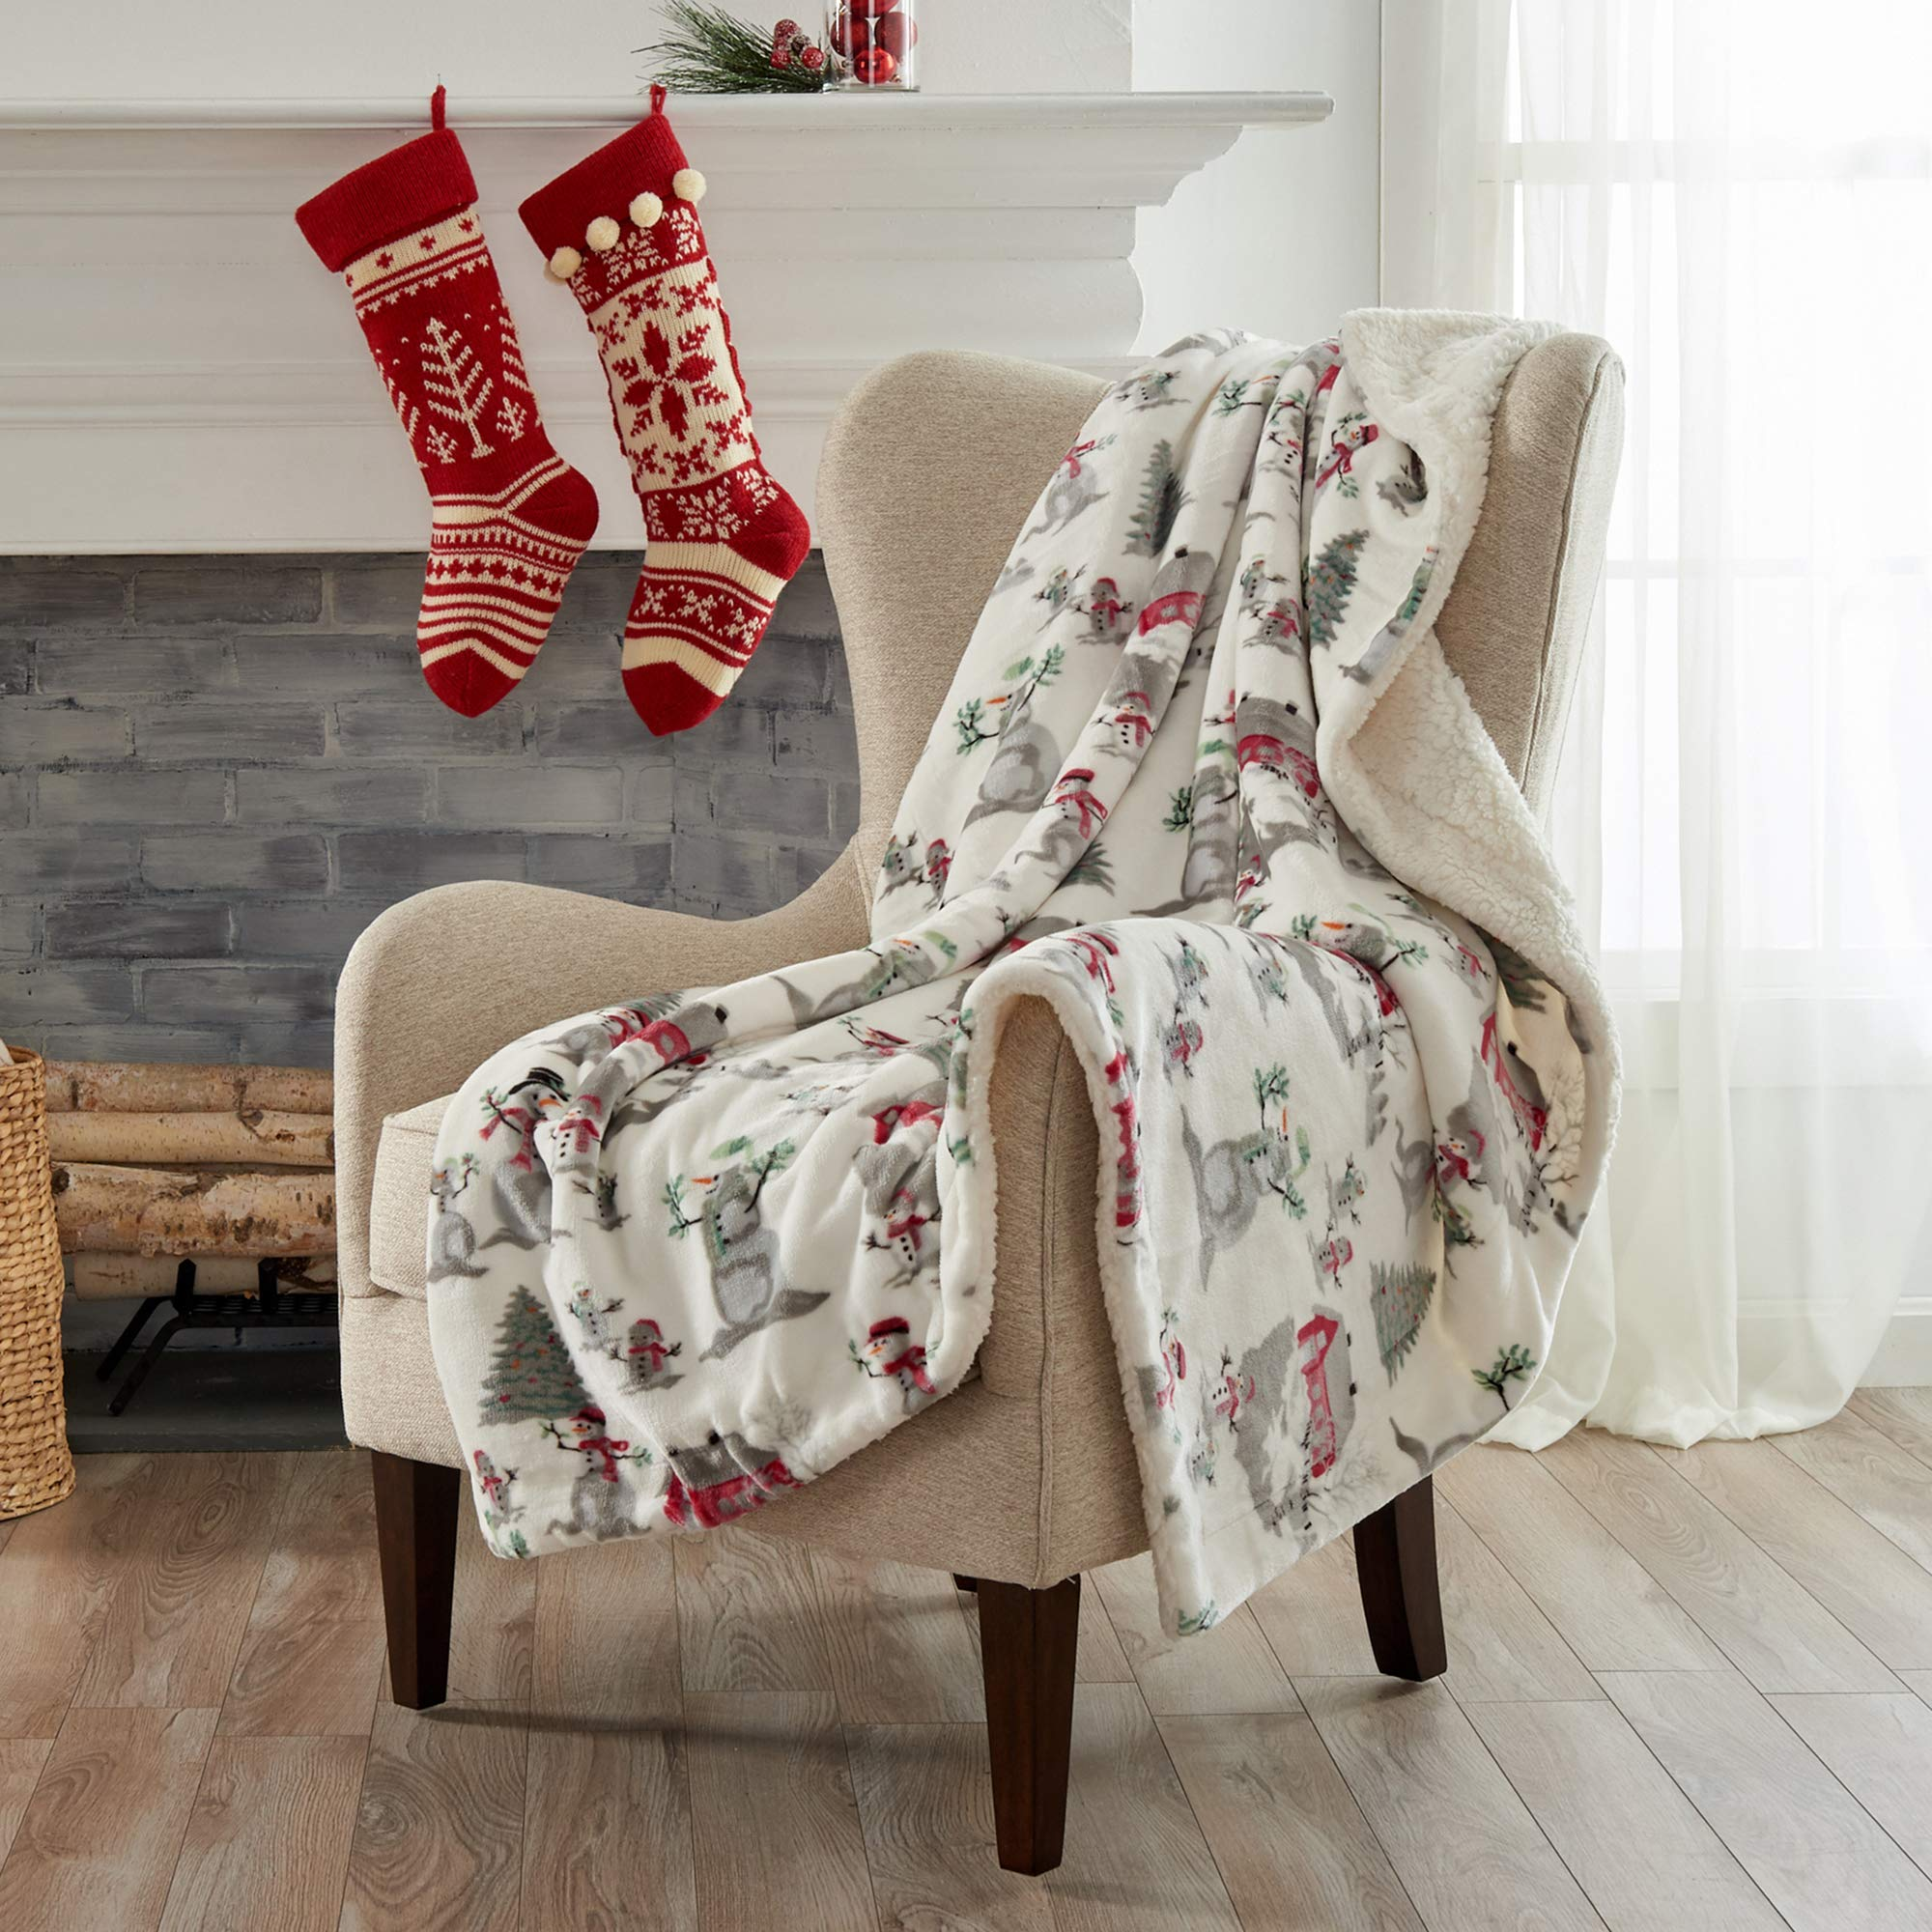 Home Fashion Designs Premium Reversible Two In One Sherpa And Fleece Velvet Plush Blanket Fuzzy Cozy All Season Berber Fleece Throw Blanket Winter Wonderland Buy Online In India Missing Category Value Products In